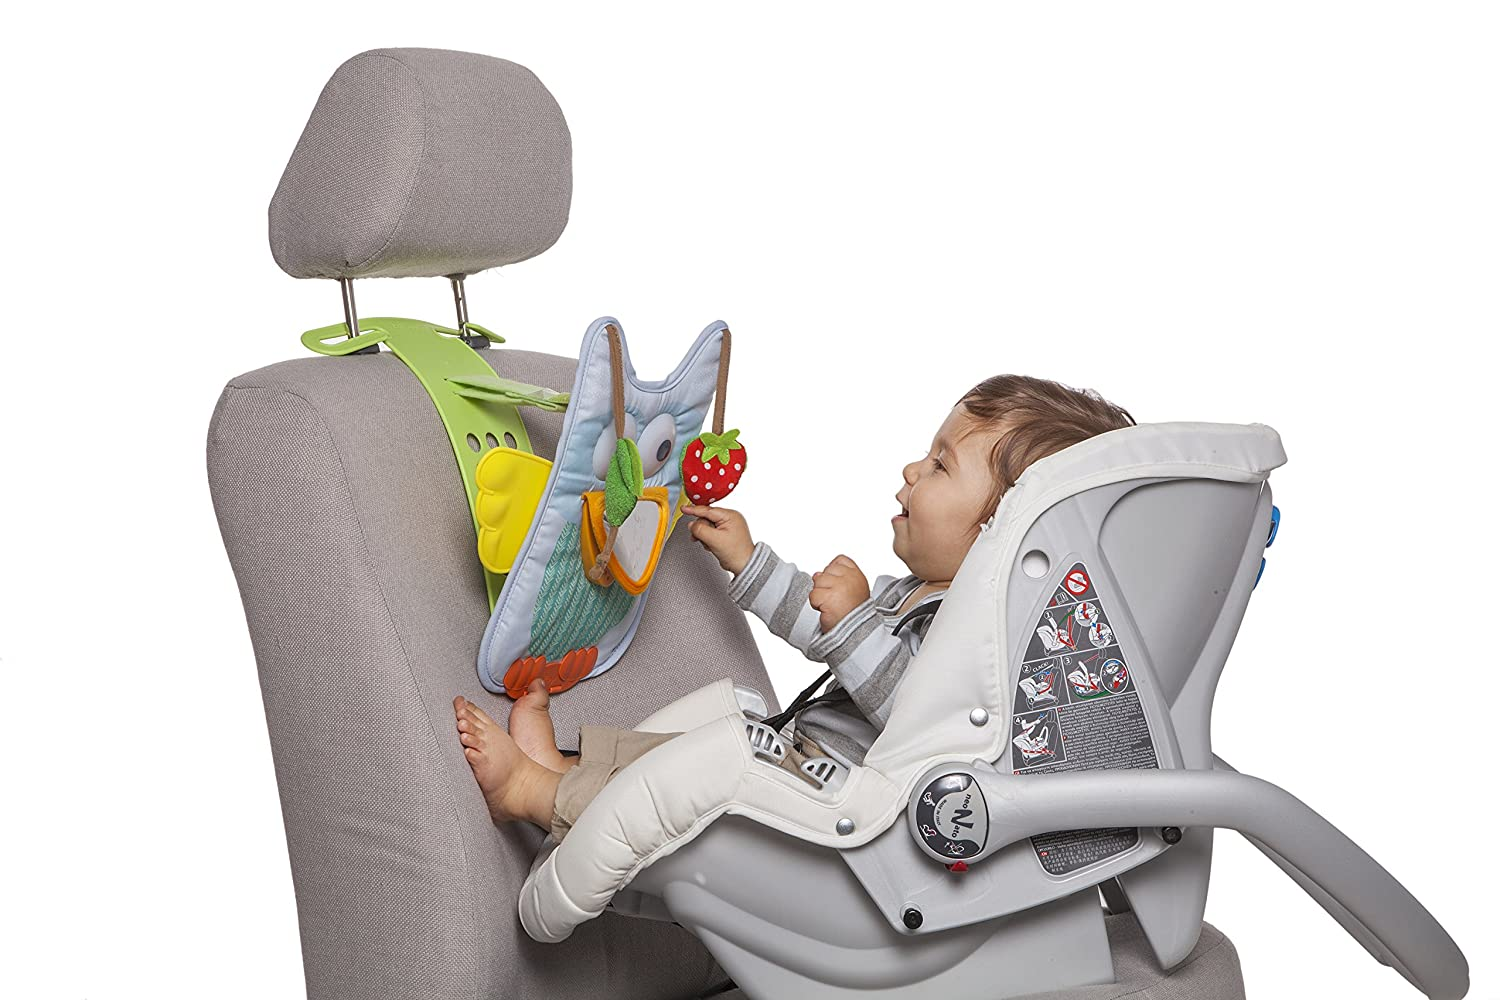 Taf Toys Musical Car Toy Owl Travel Activity Centre with Remote Control